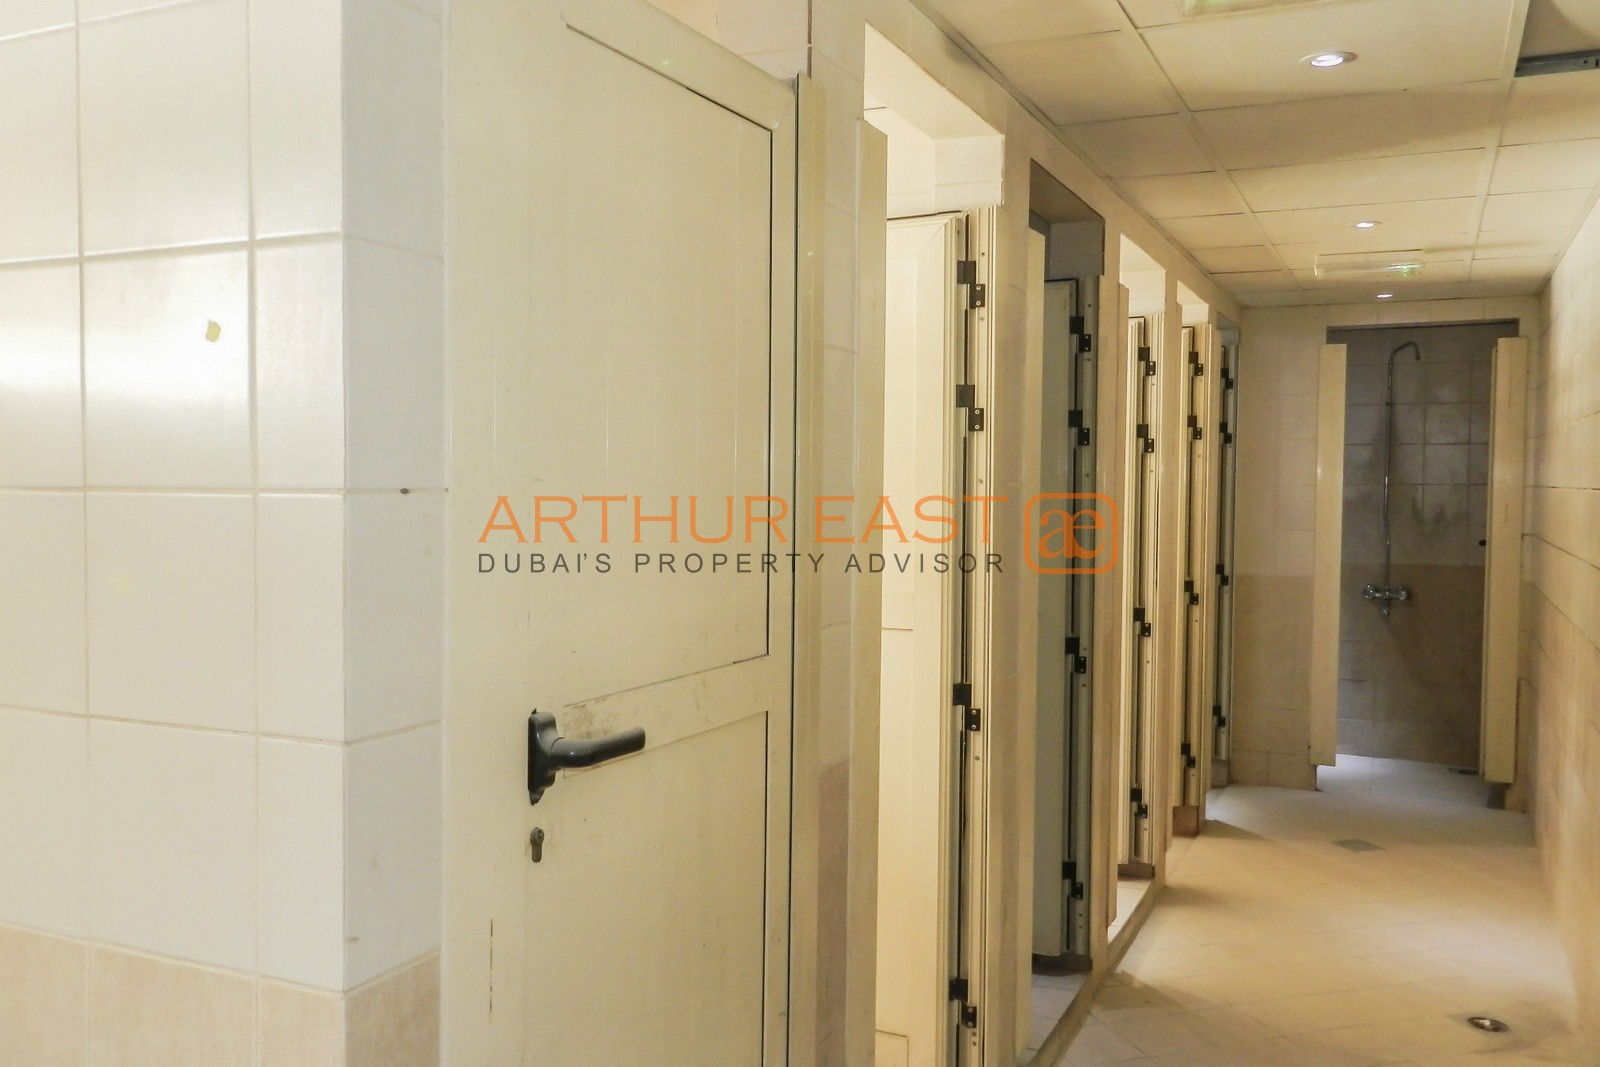 jebel-ali-rooms-aed-3500-capacity-of-6